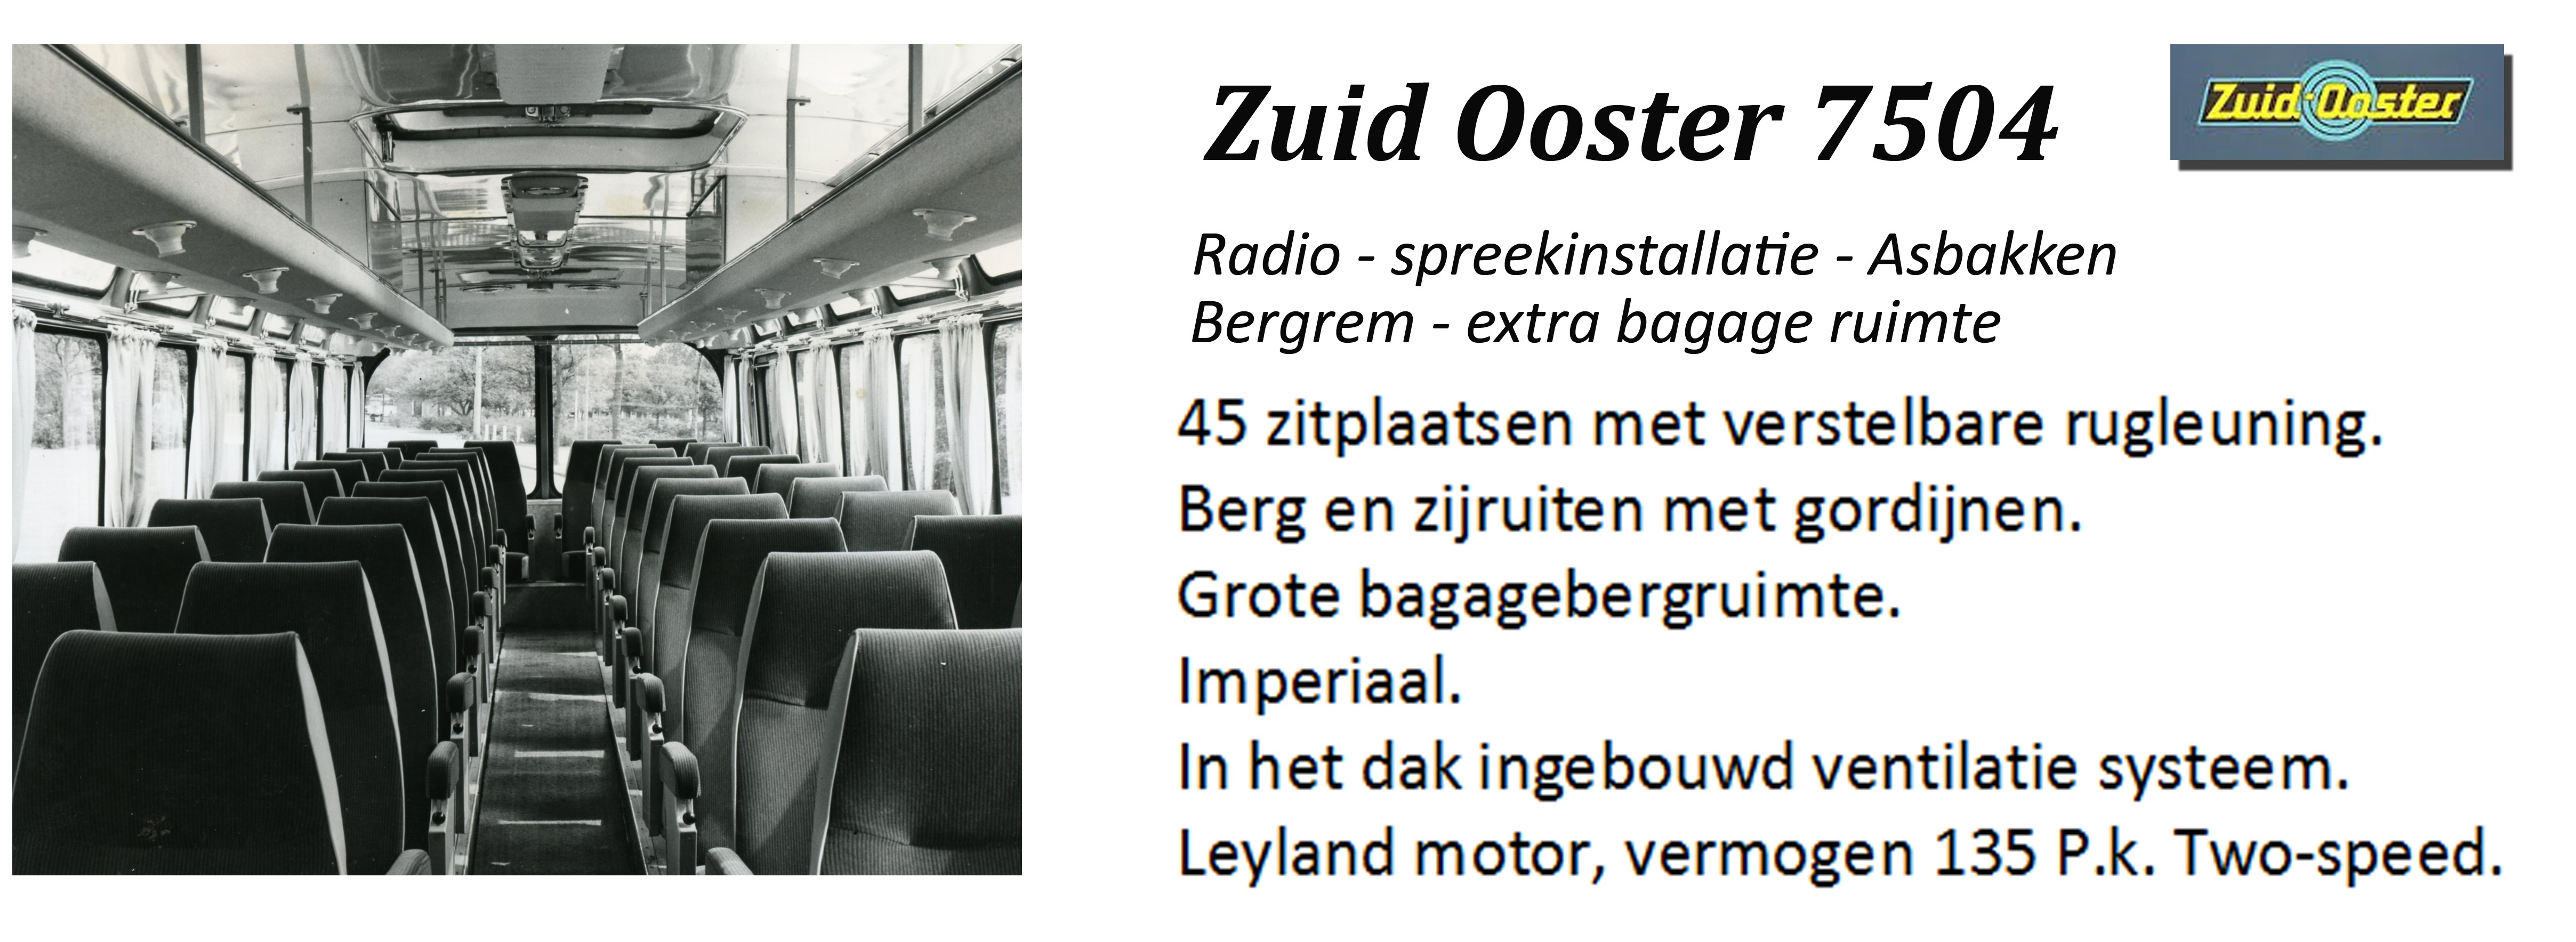 7504-Zuid-Ooster1